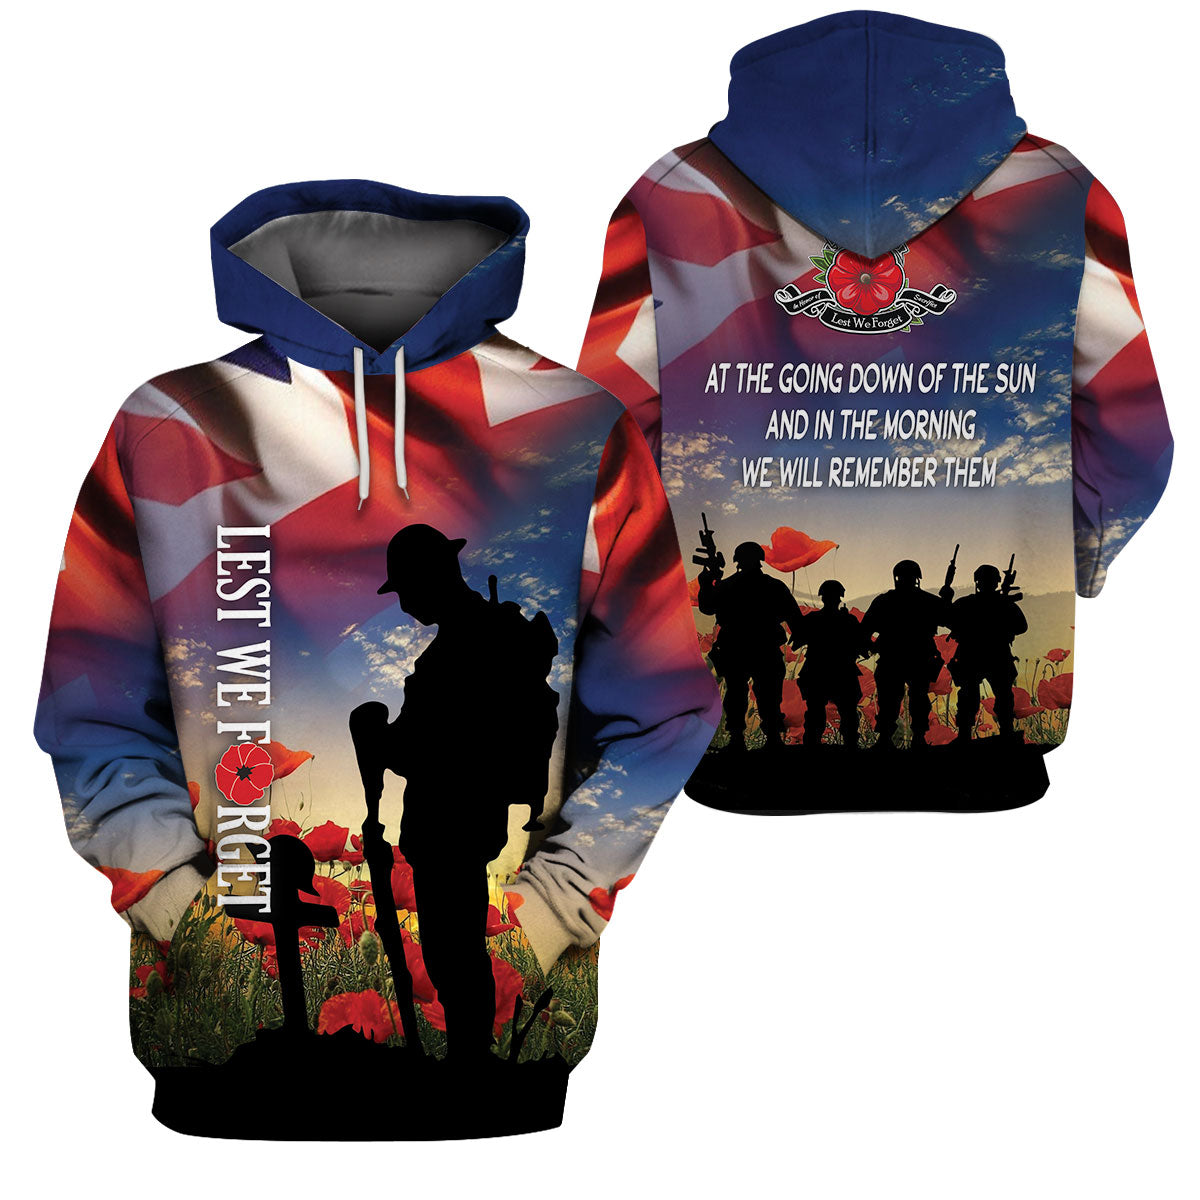 3D Veterans Clothing - Lest We Forget